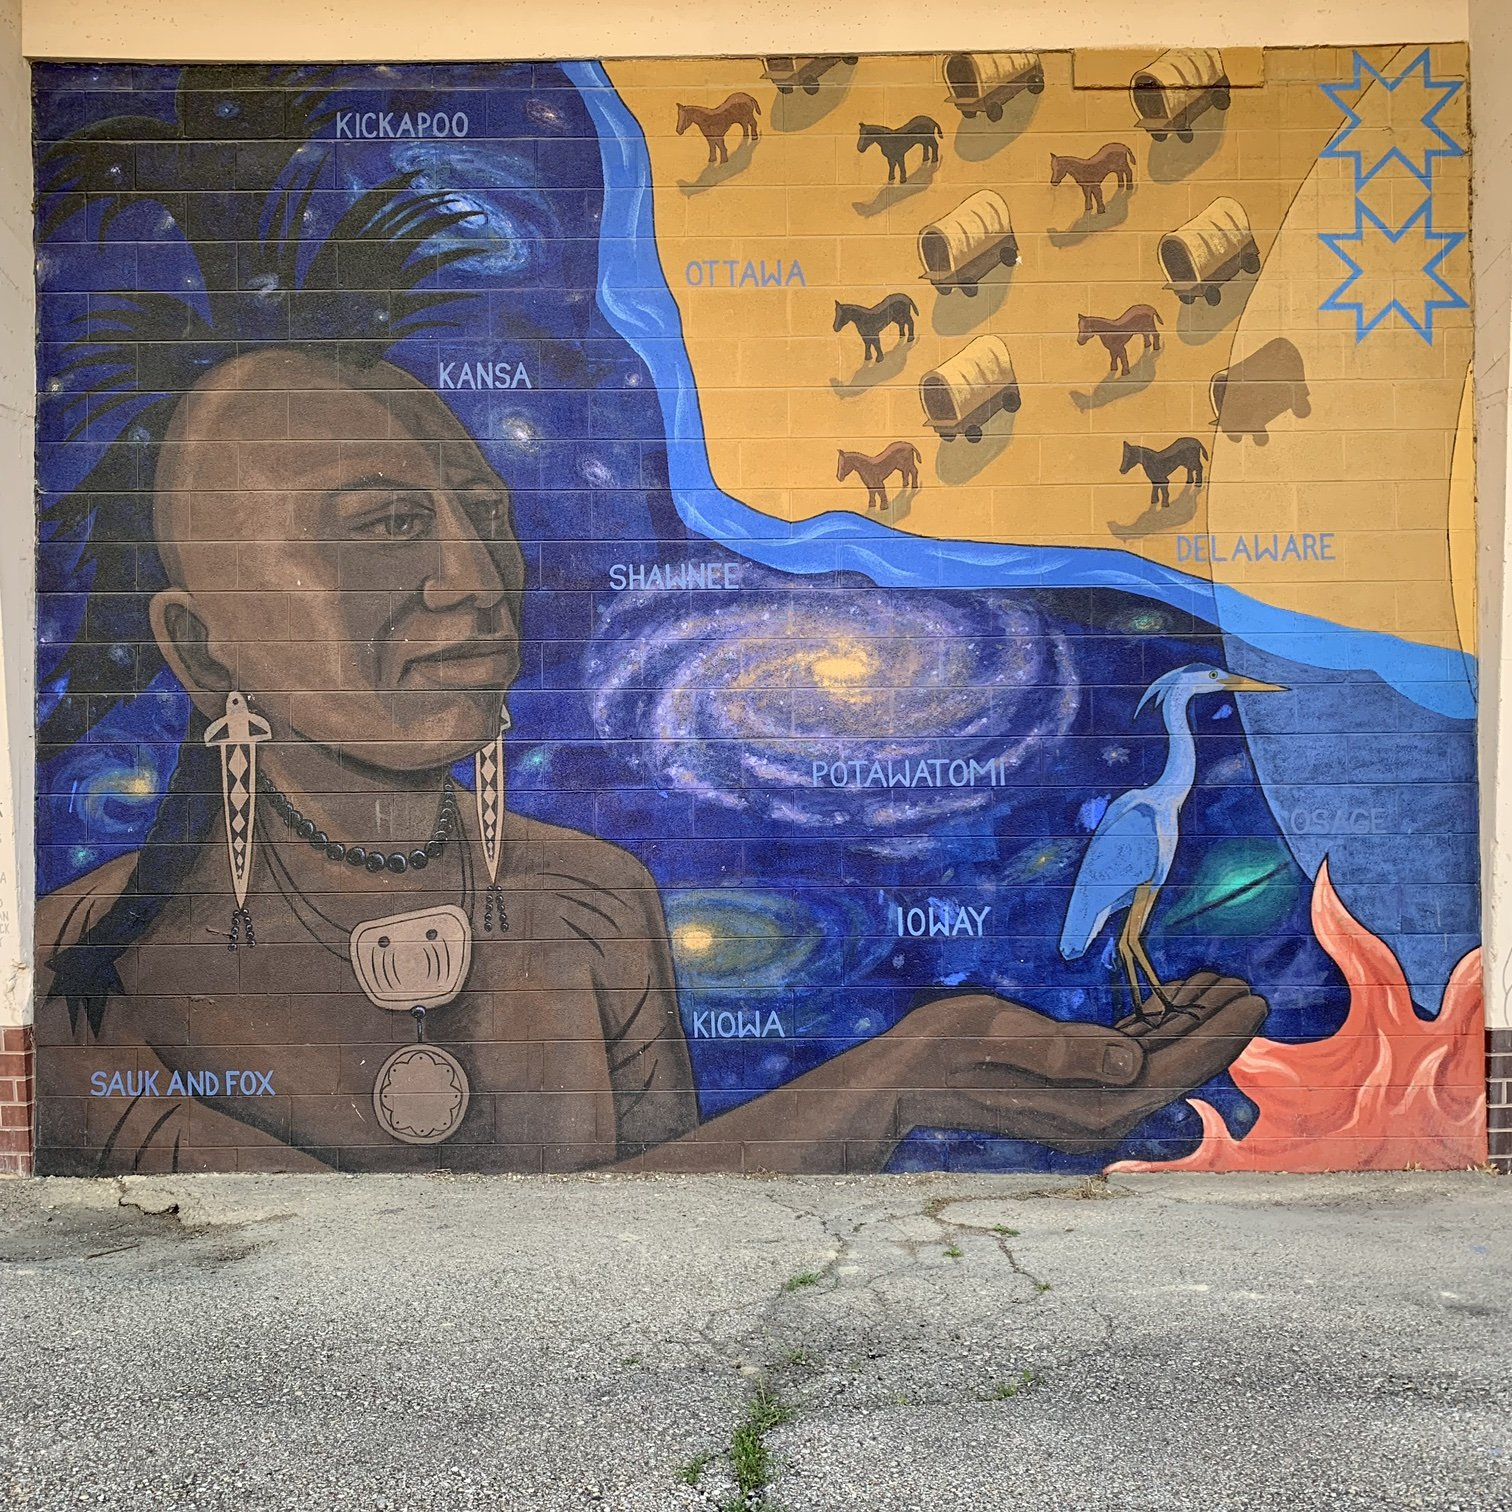 The first panel of the mural that depicts the Native Americans' land being invaded by white settlers.